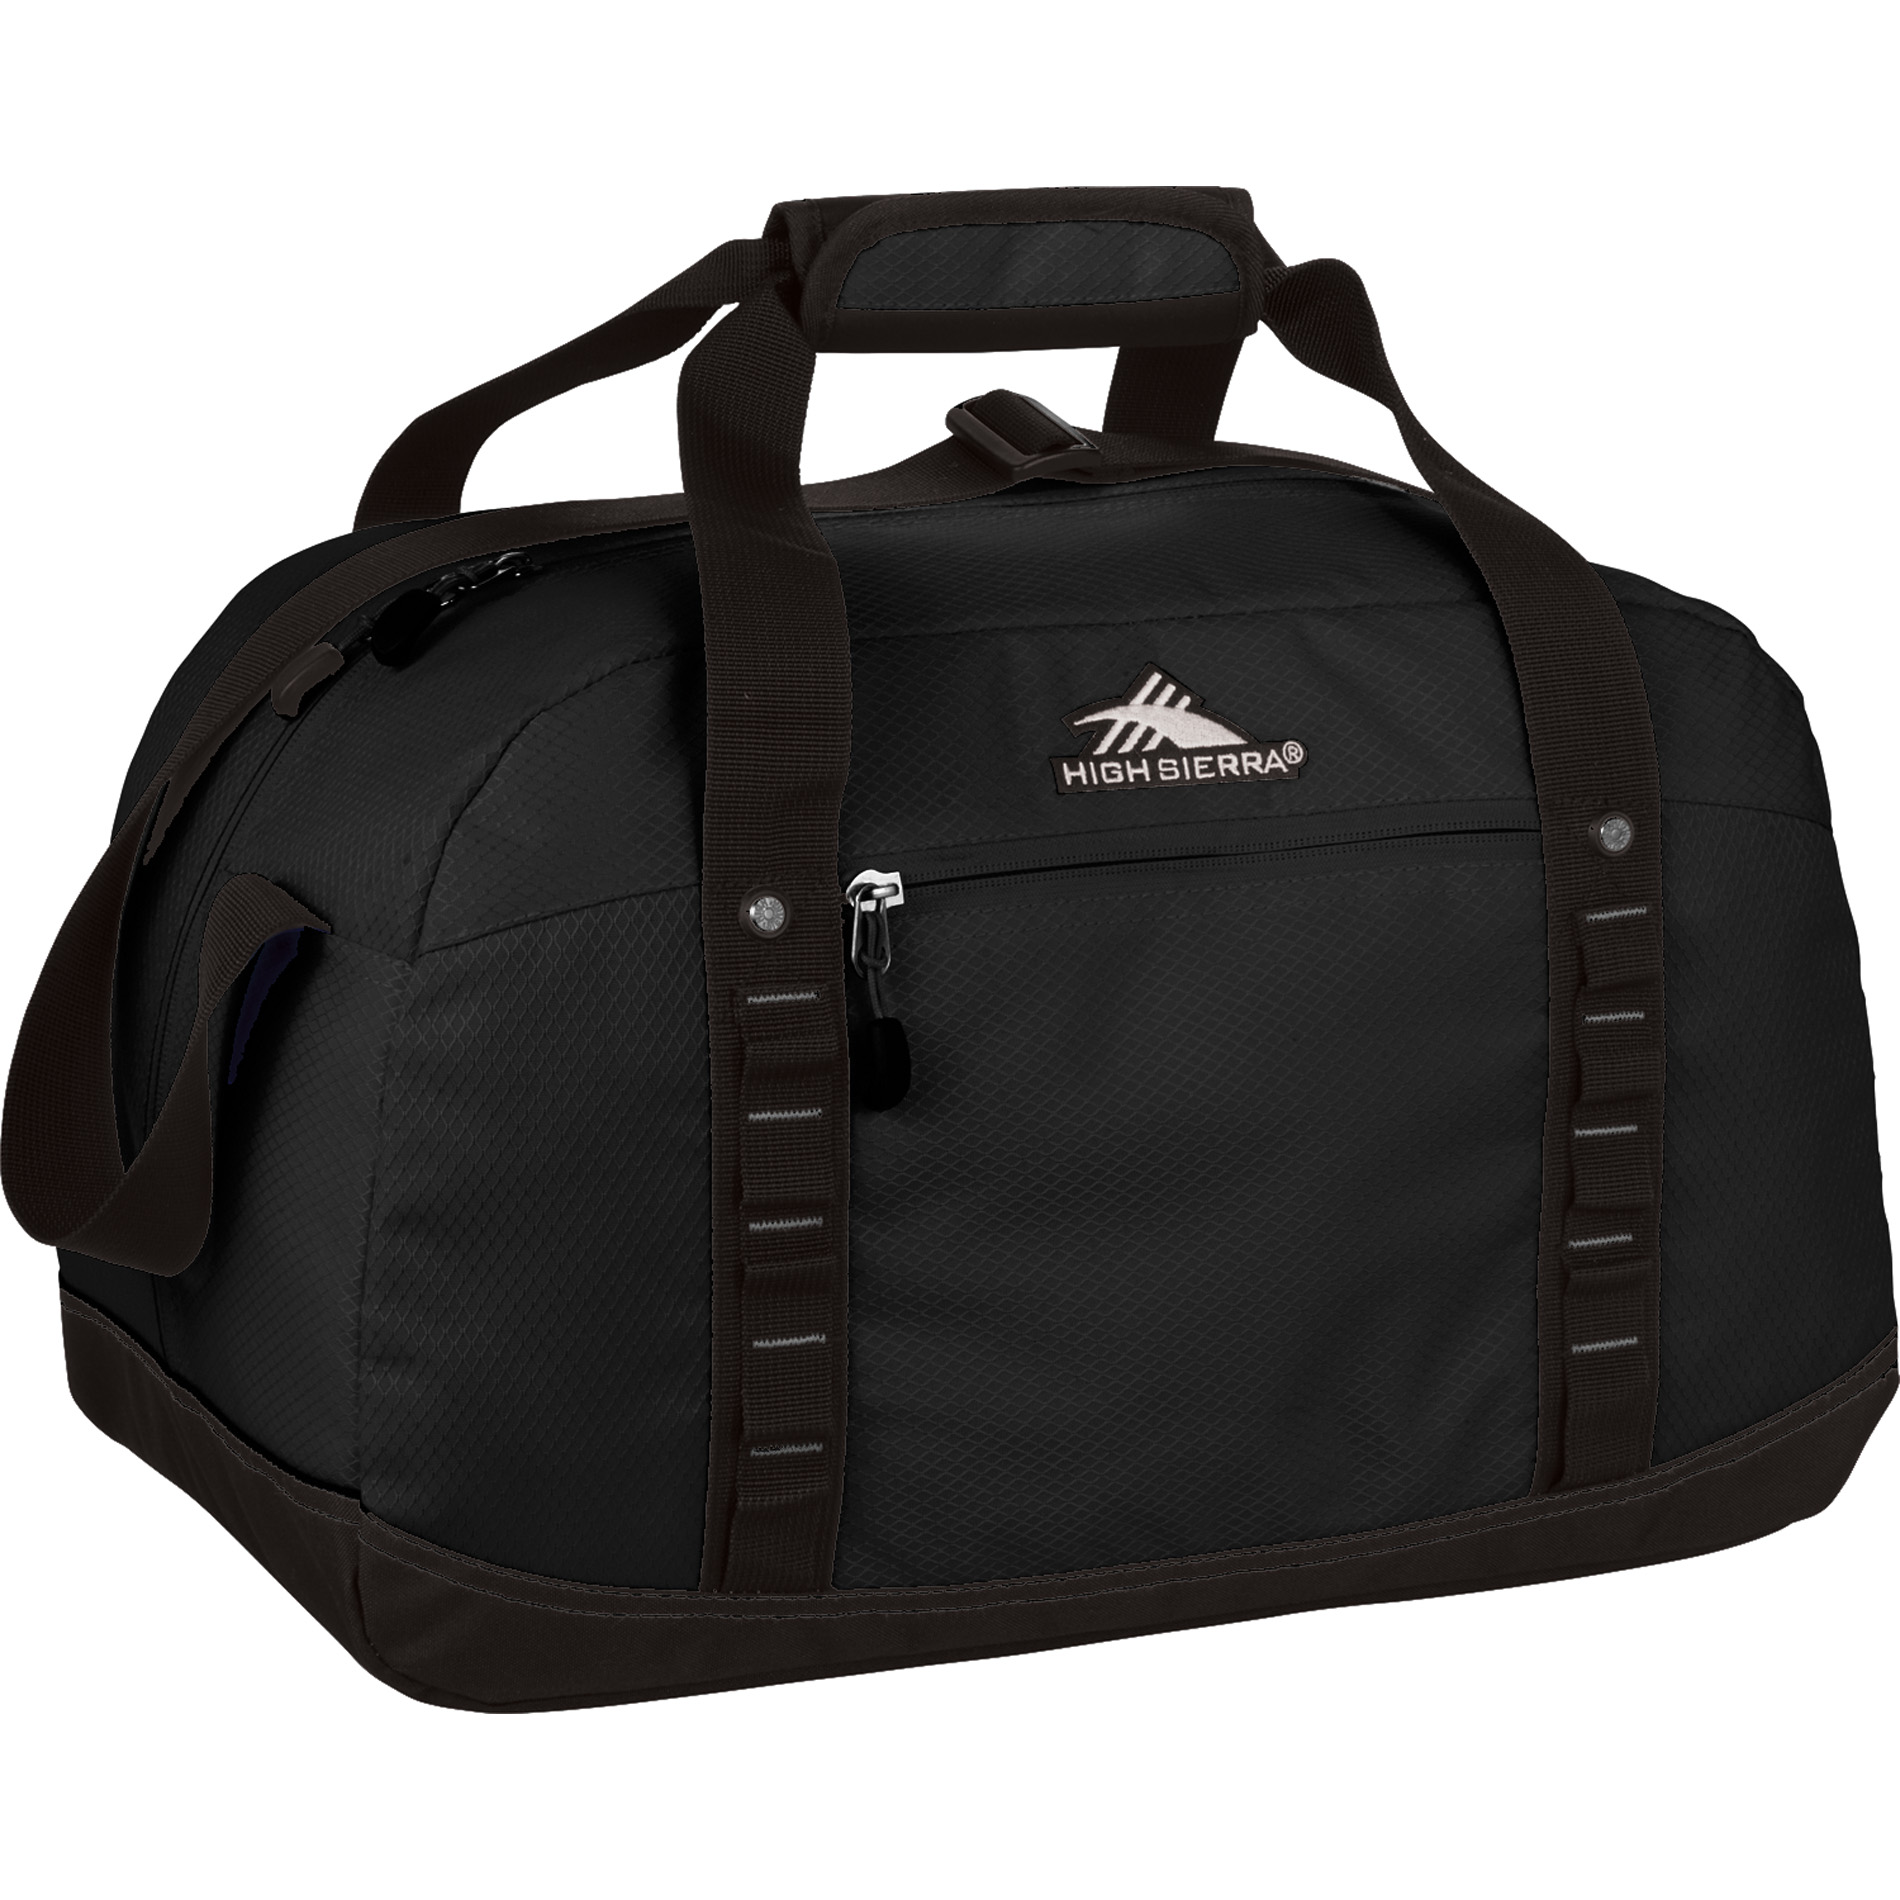 "High Sierra 8052-55 - Free Throw 21.5"" Duffel Bag"